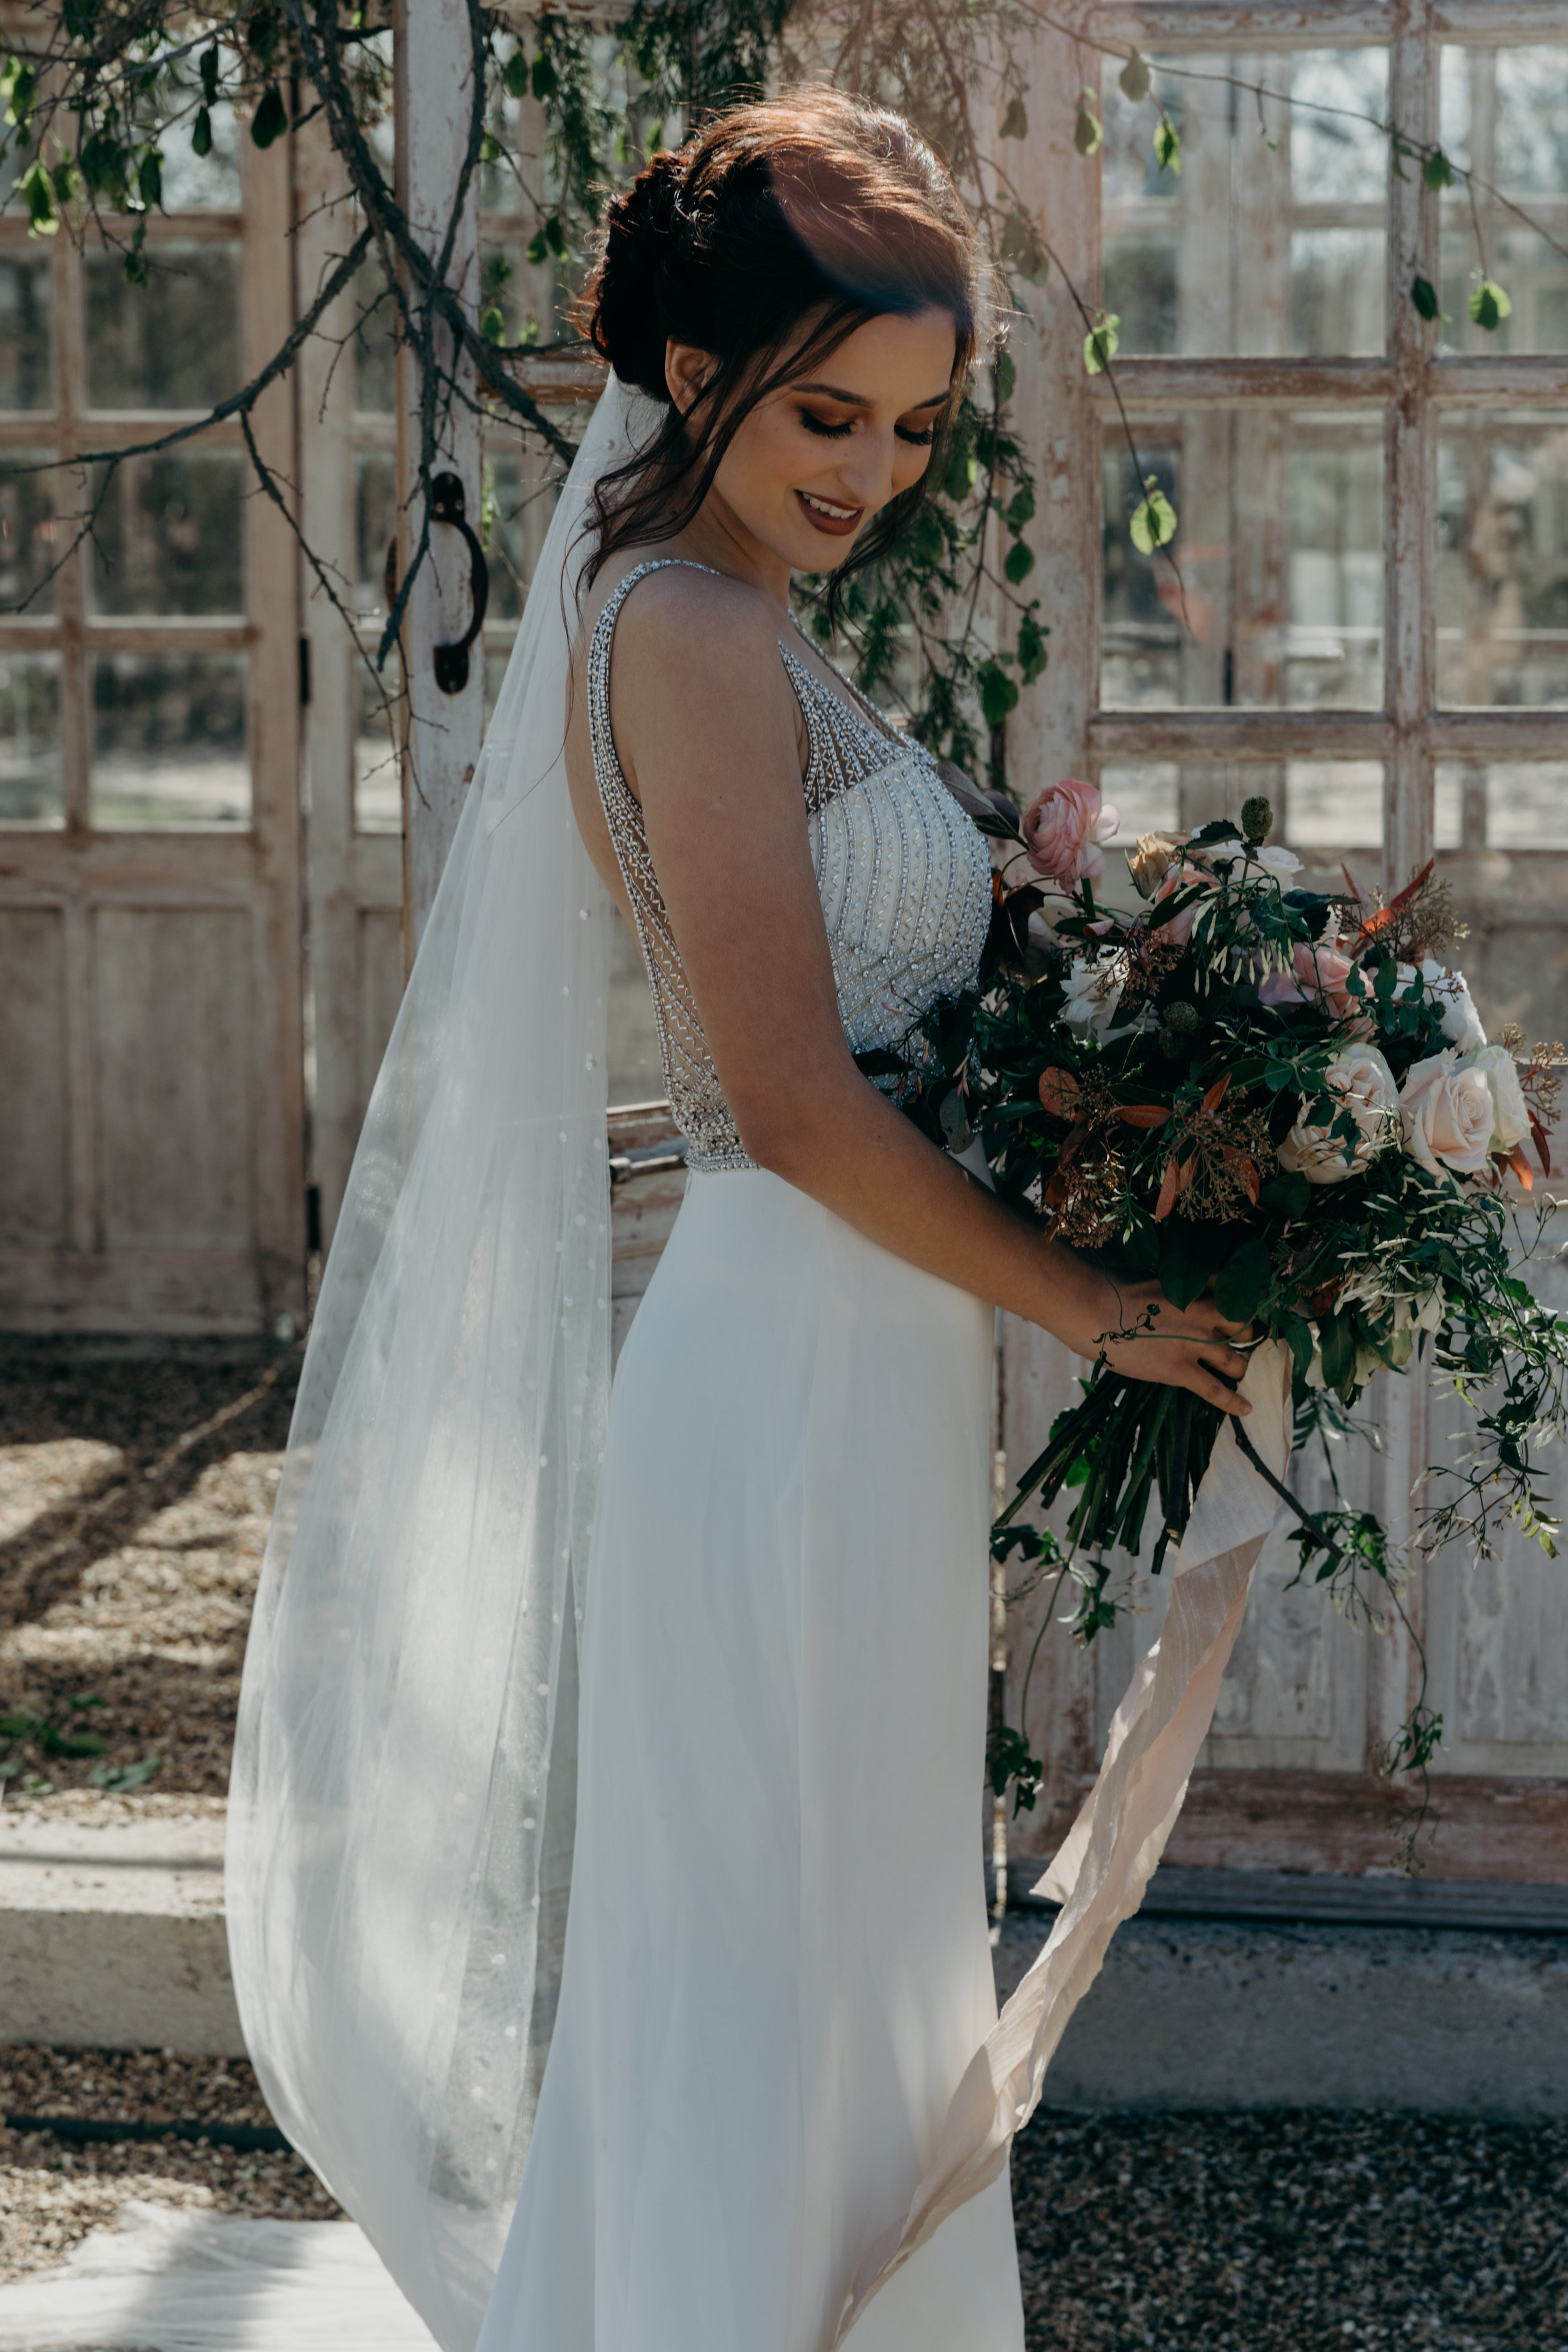 TheWhiteSparrowStyledWeddingShootinTexas-6.jpg